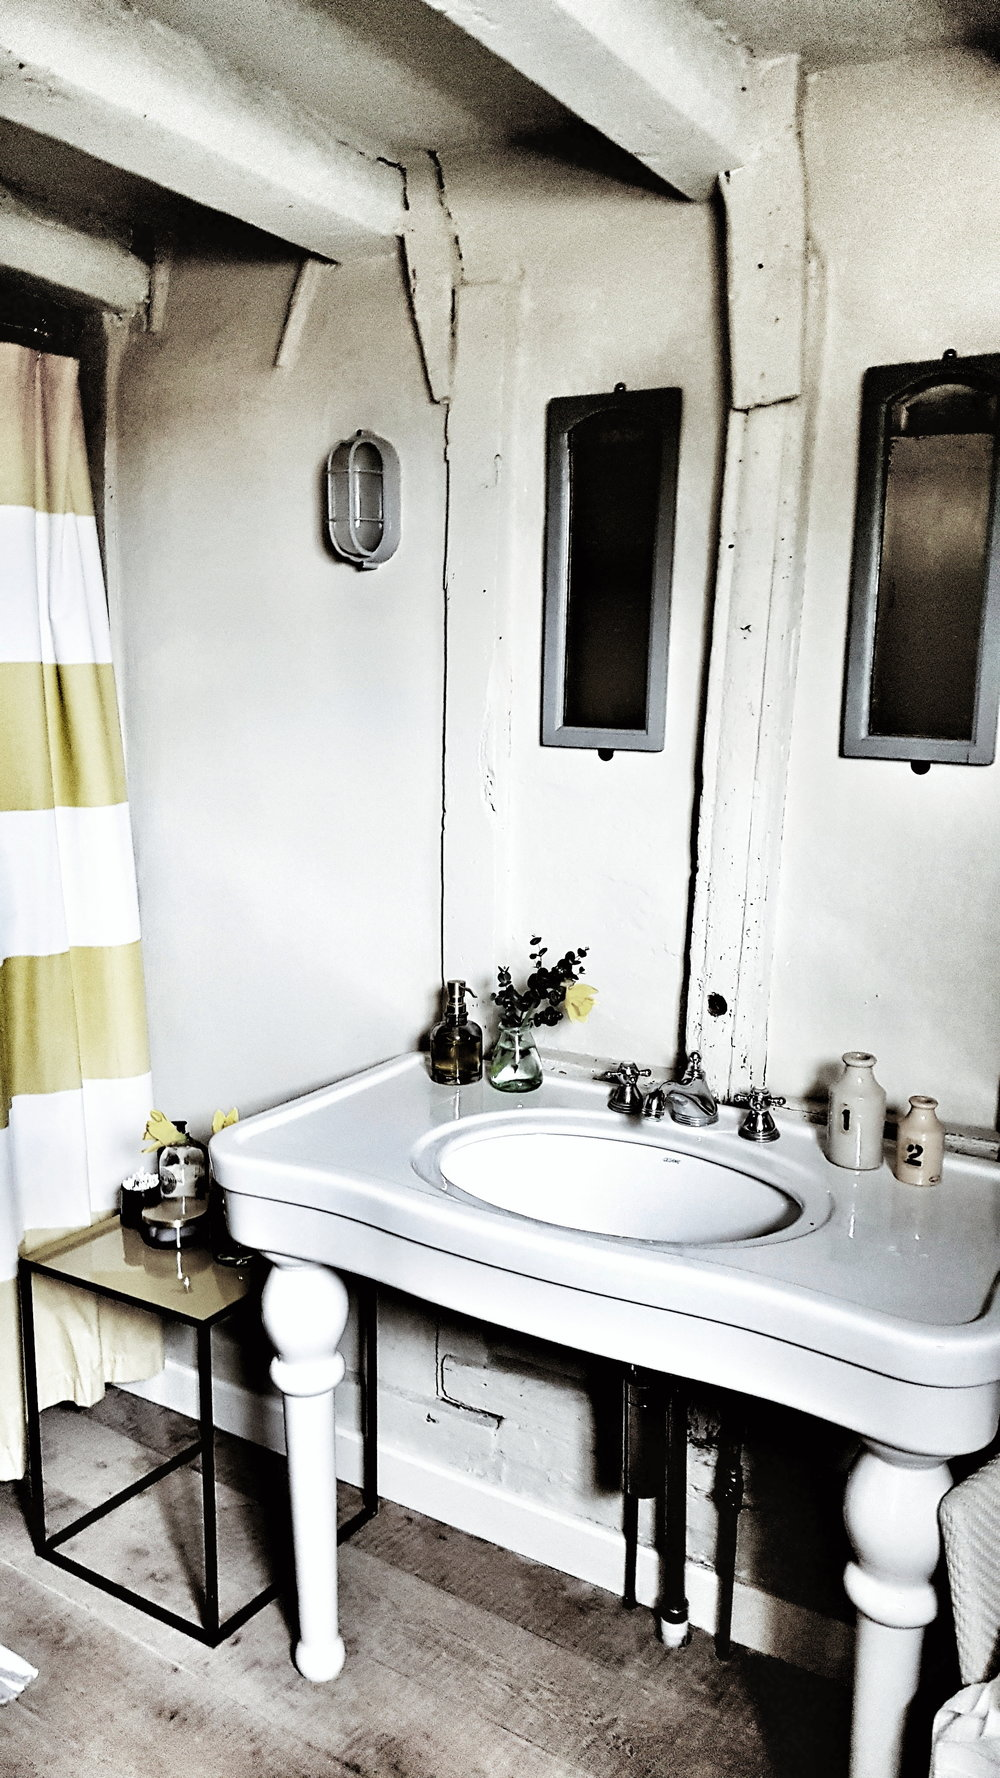 The vintage sink and vanity area in the gorgeous rustic bathroom